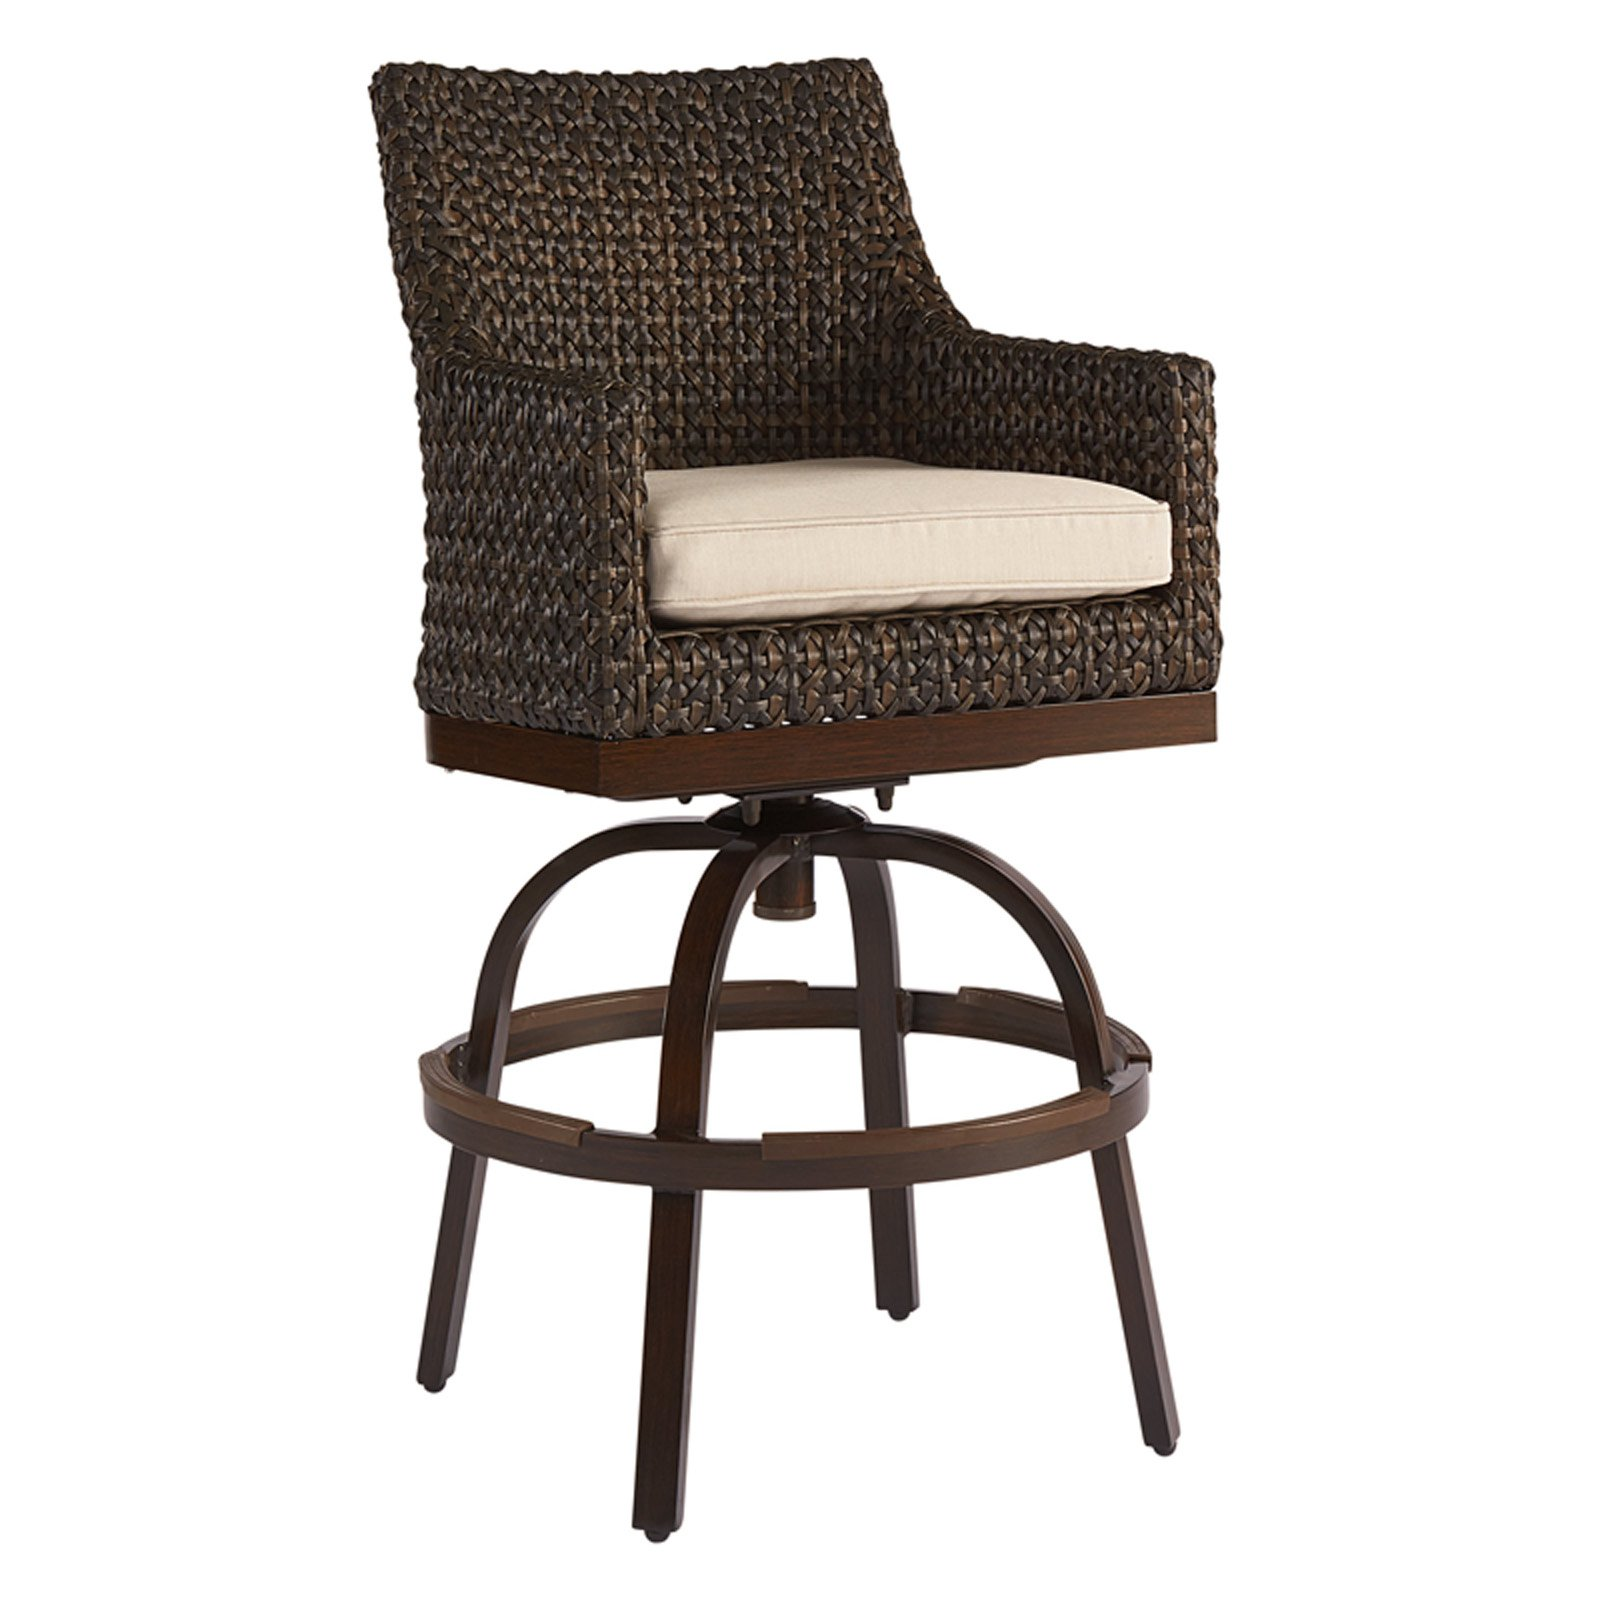 A.R.T. Furniture Epicenters Outdoor Franklin Wicker Bar Stool